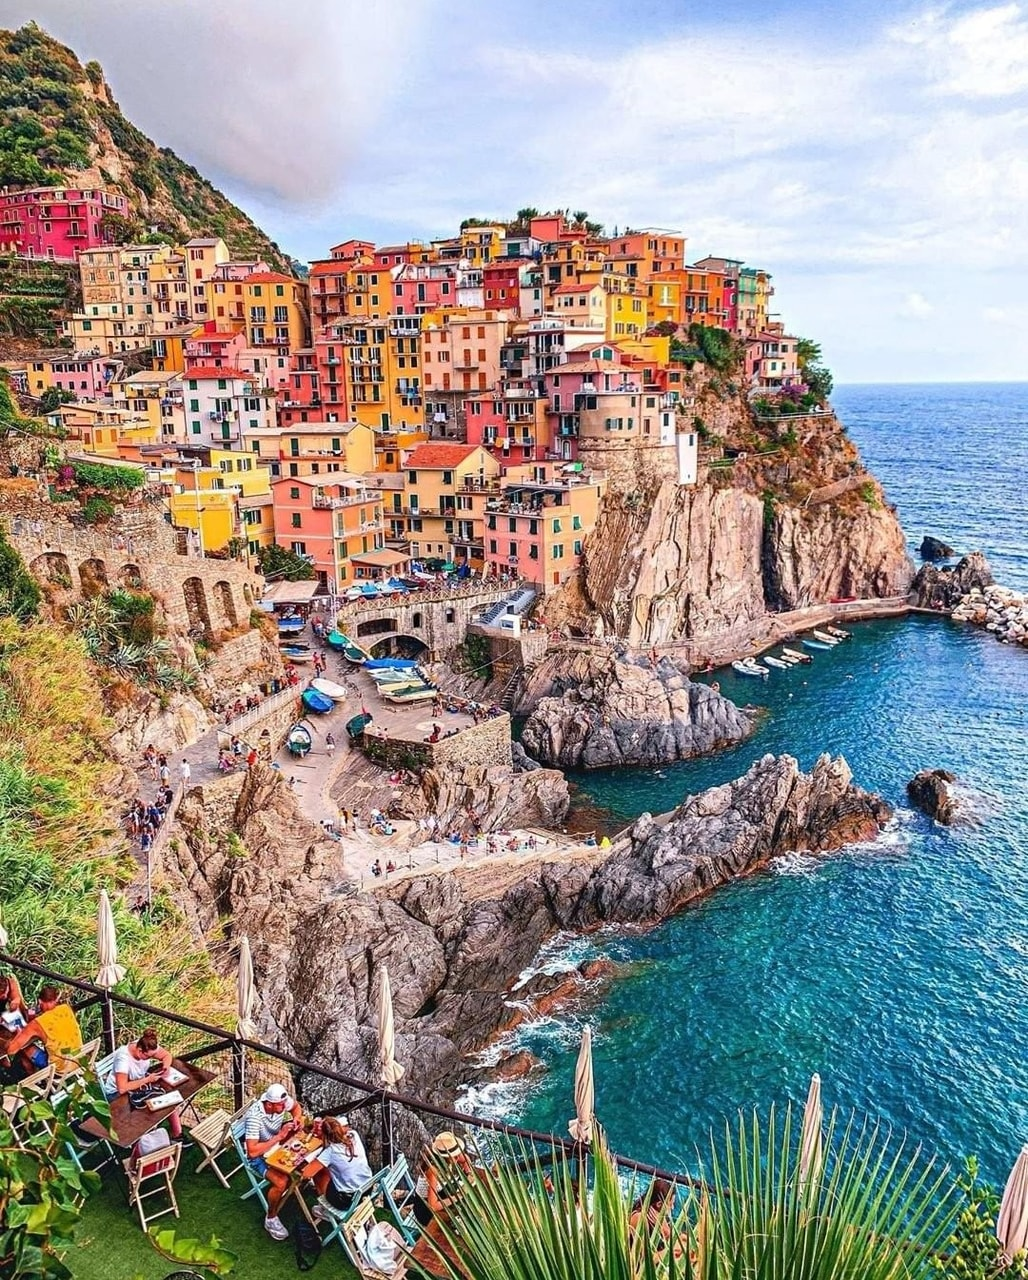 The Heart Of Cinque Terre cinque terre, italy uploaded by carrie on we heart it